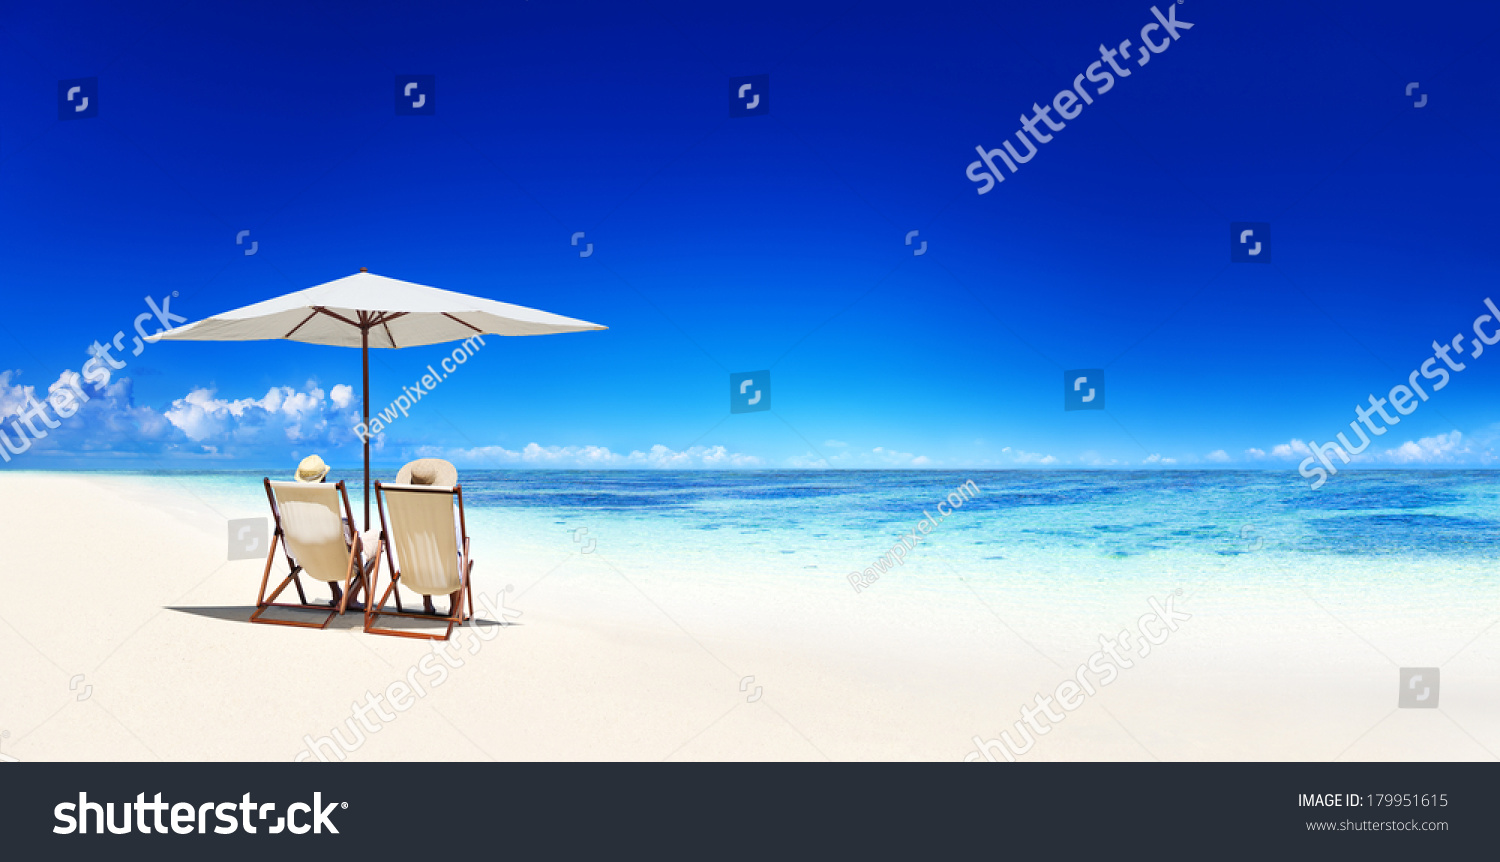 Couple Relaxing in Deck Chairs on Tropical Beach #179951615